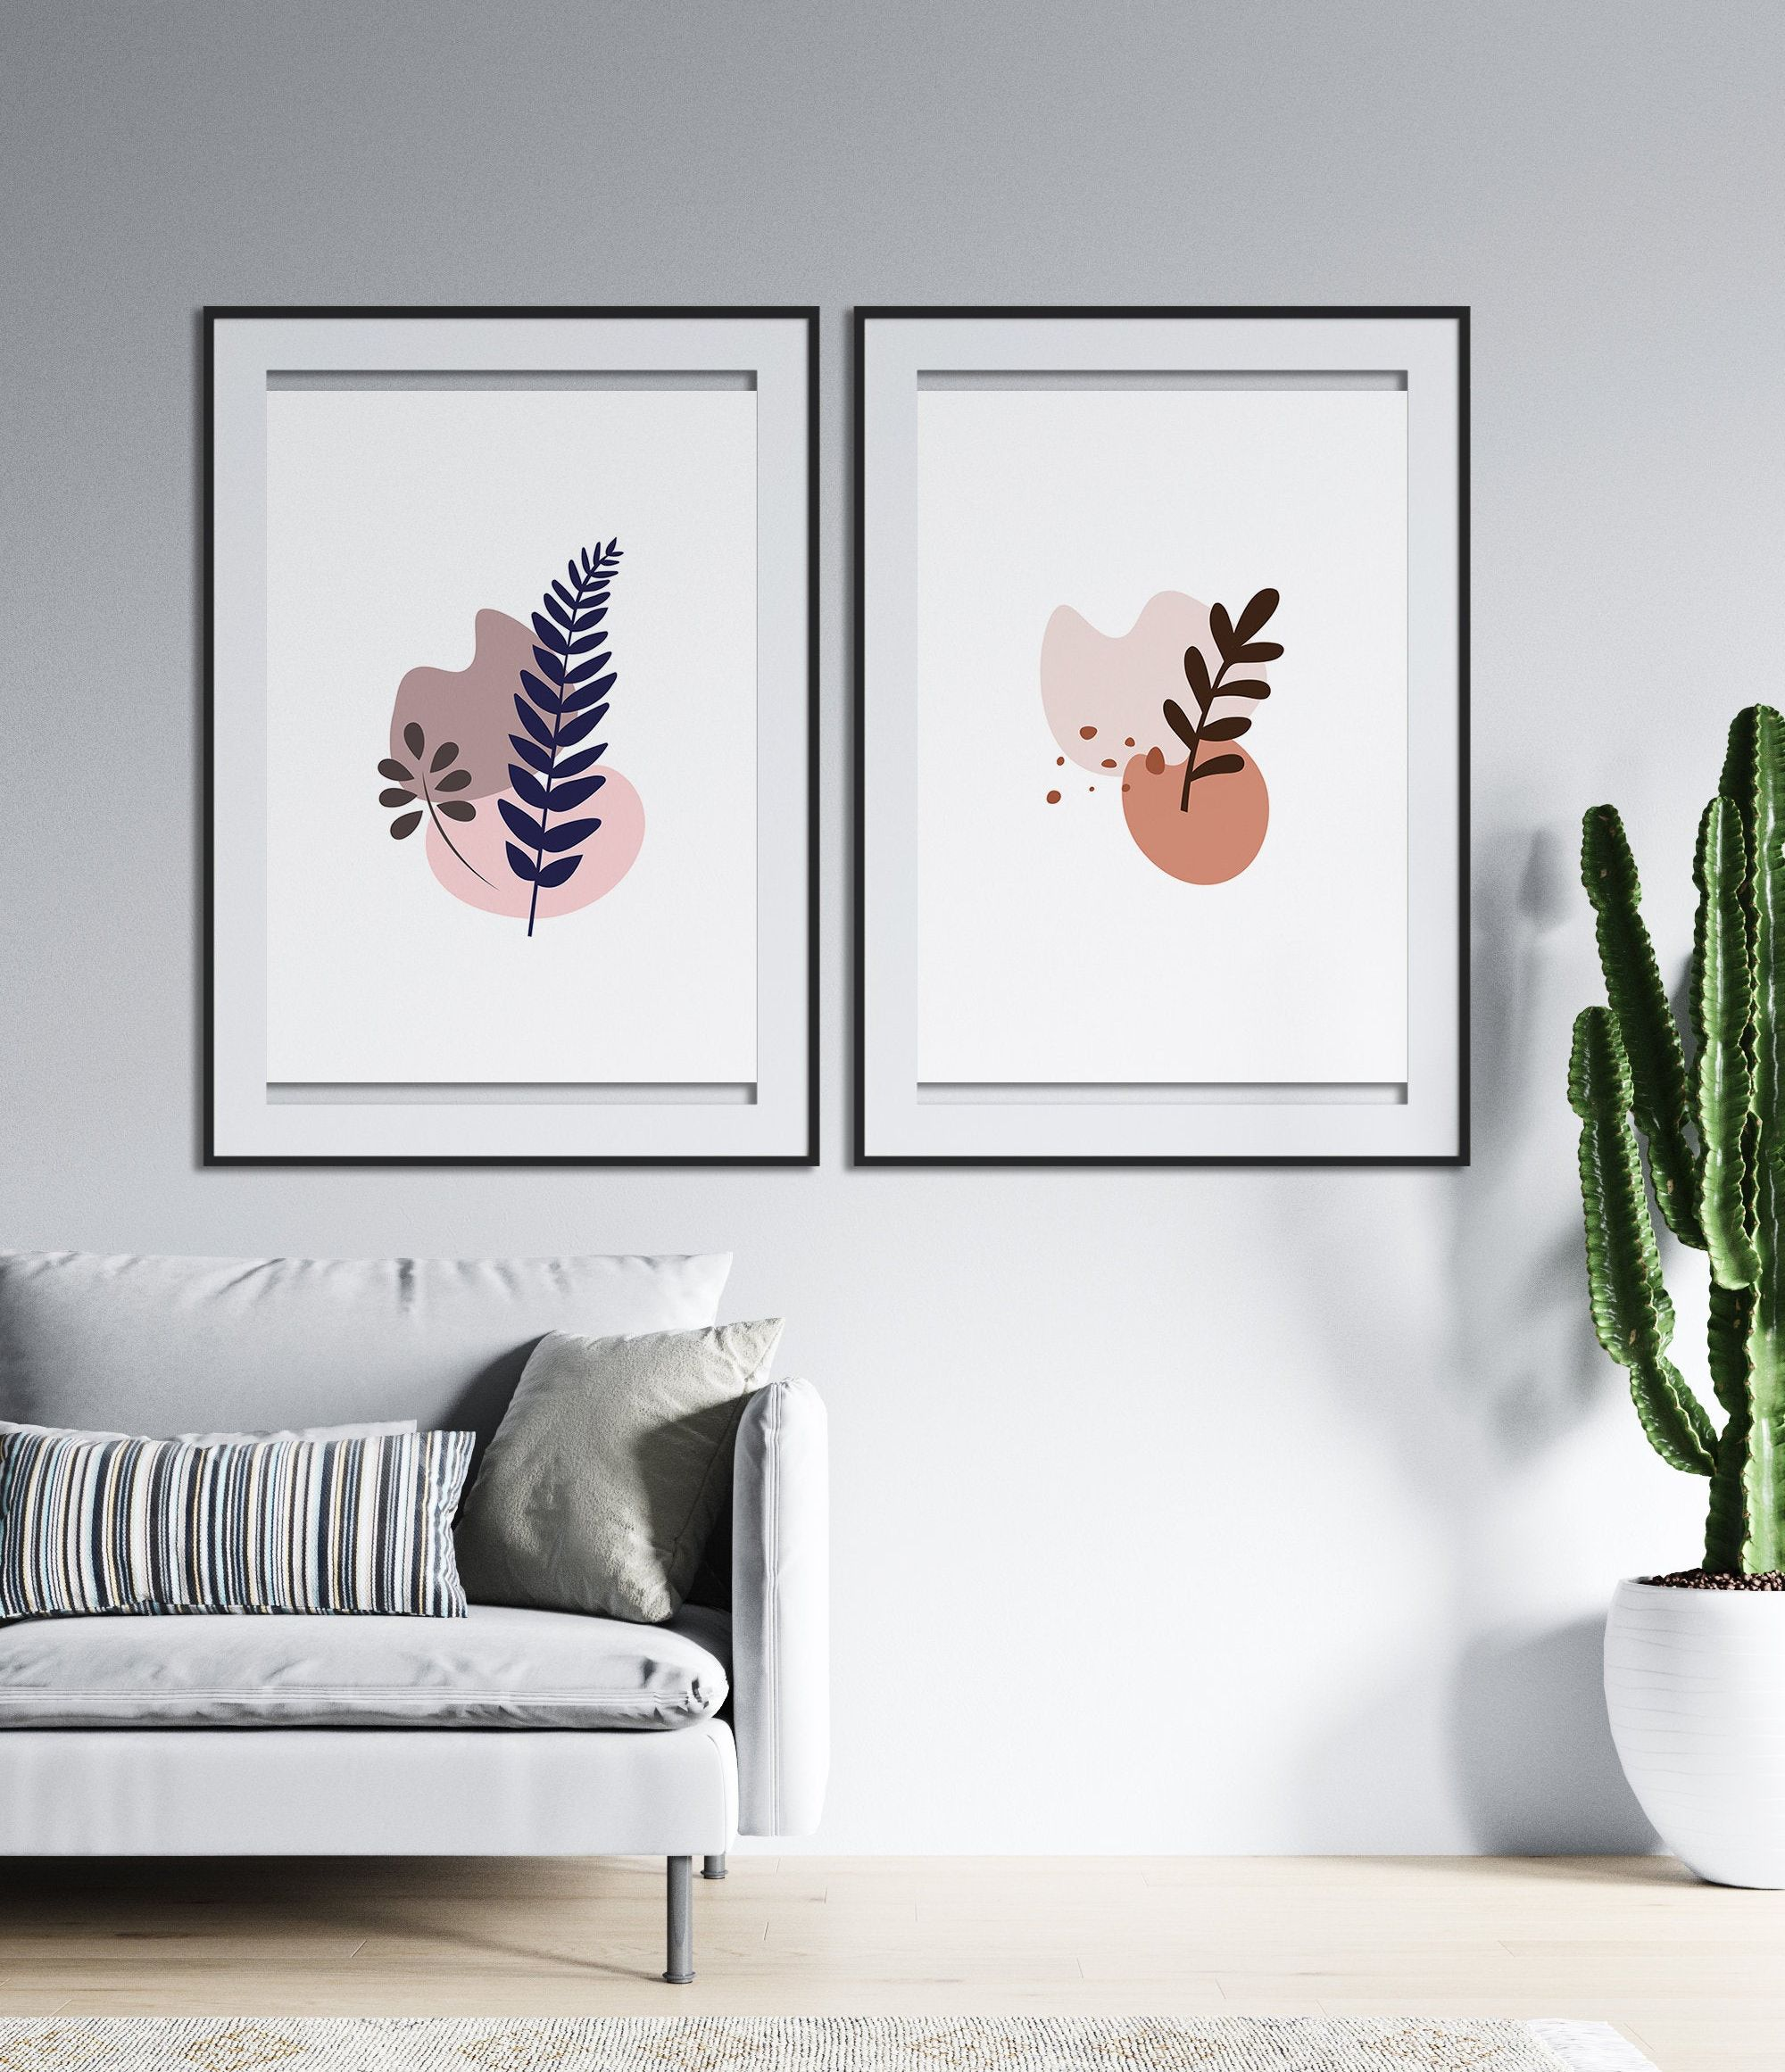 Abstract Shapes Print 3 Piece Wall Art Digital Download Minimalistic Leaf Composition Different Sizes Botanical Wall Art Home Decor In 2020 Etsy Wall Art 3 Piece Wall Art Botanical Wall Art